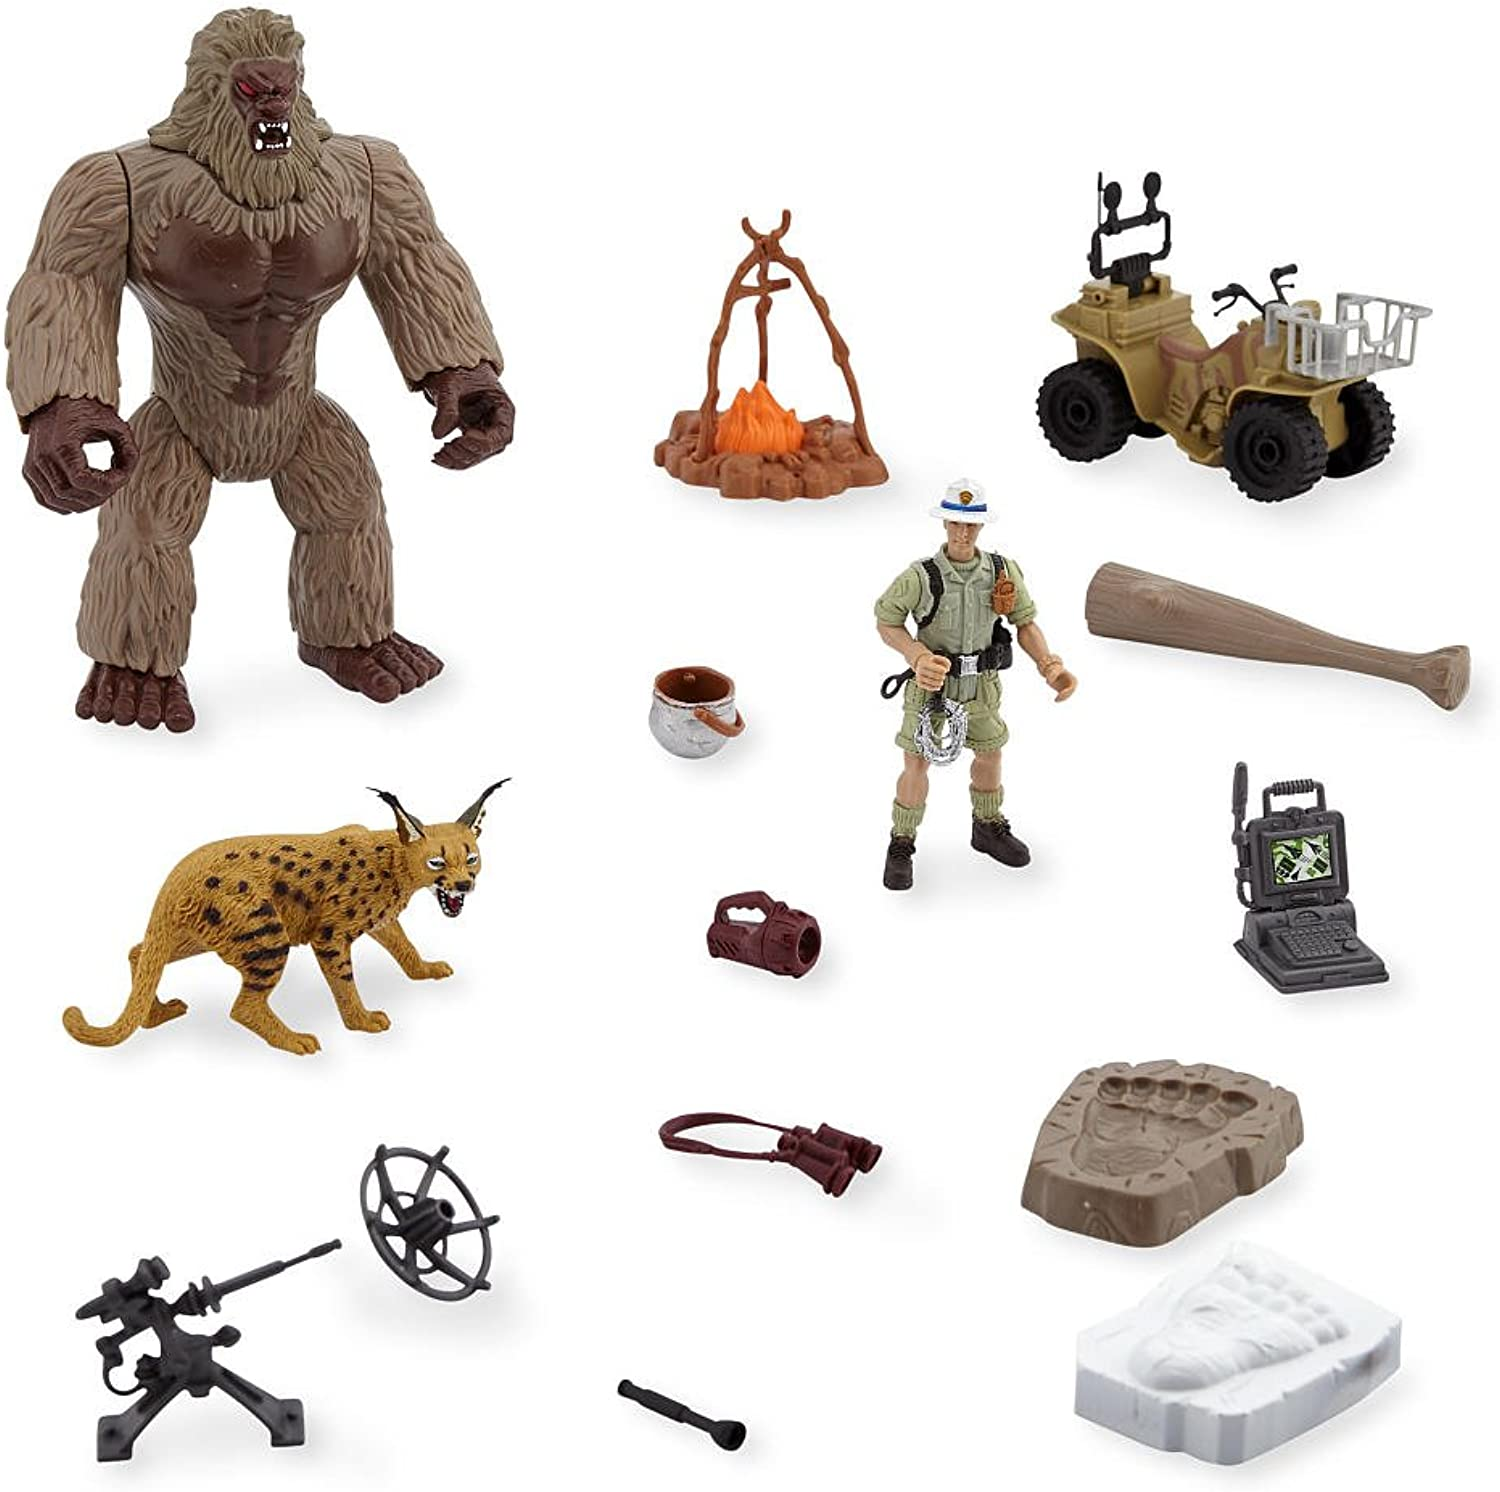 ganancia cero Animal Planet Big Foot Jugar Jugar Jugar Set by Juguetes R Us  ventas de salida